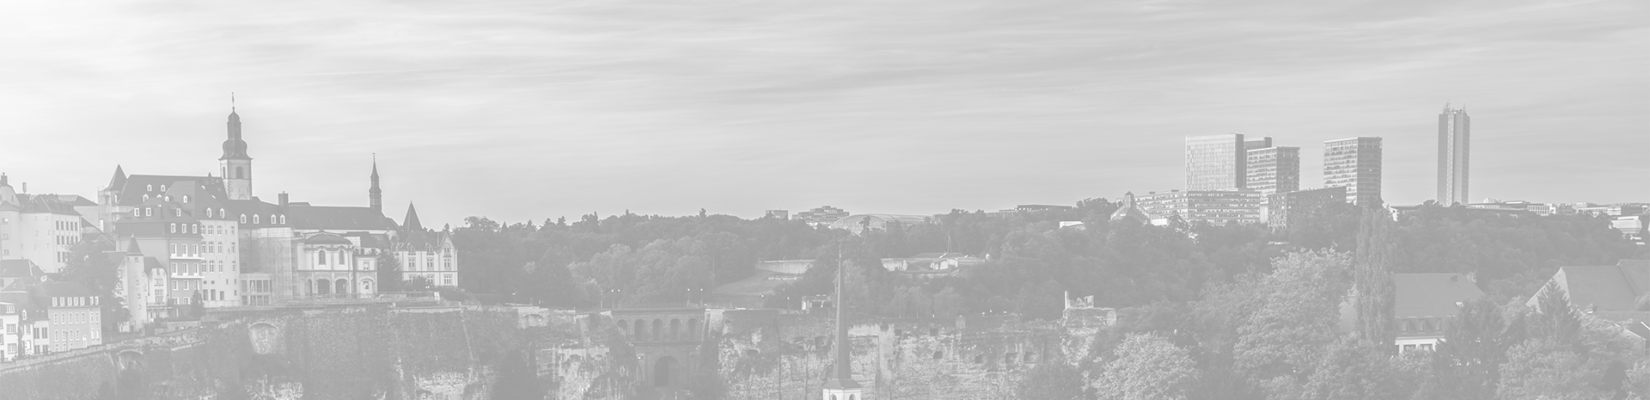 Transparent-Gray Background of City in Luxembourg